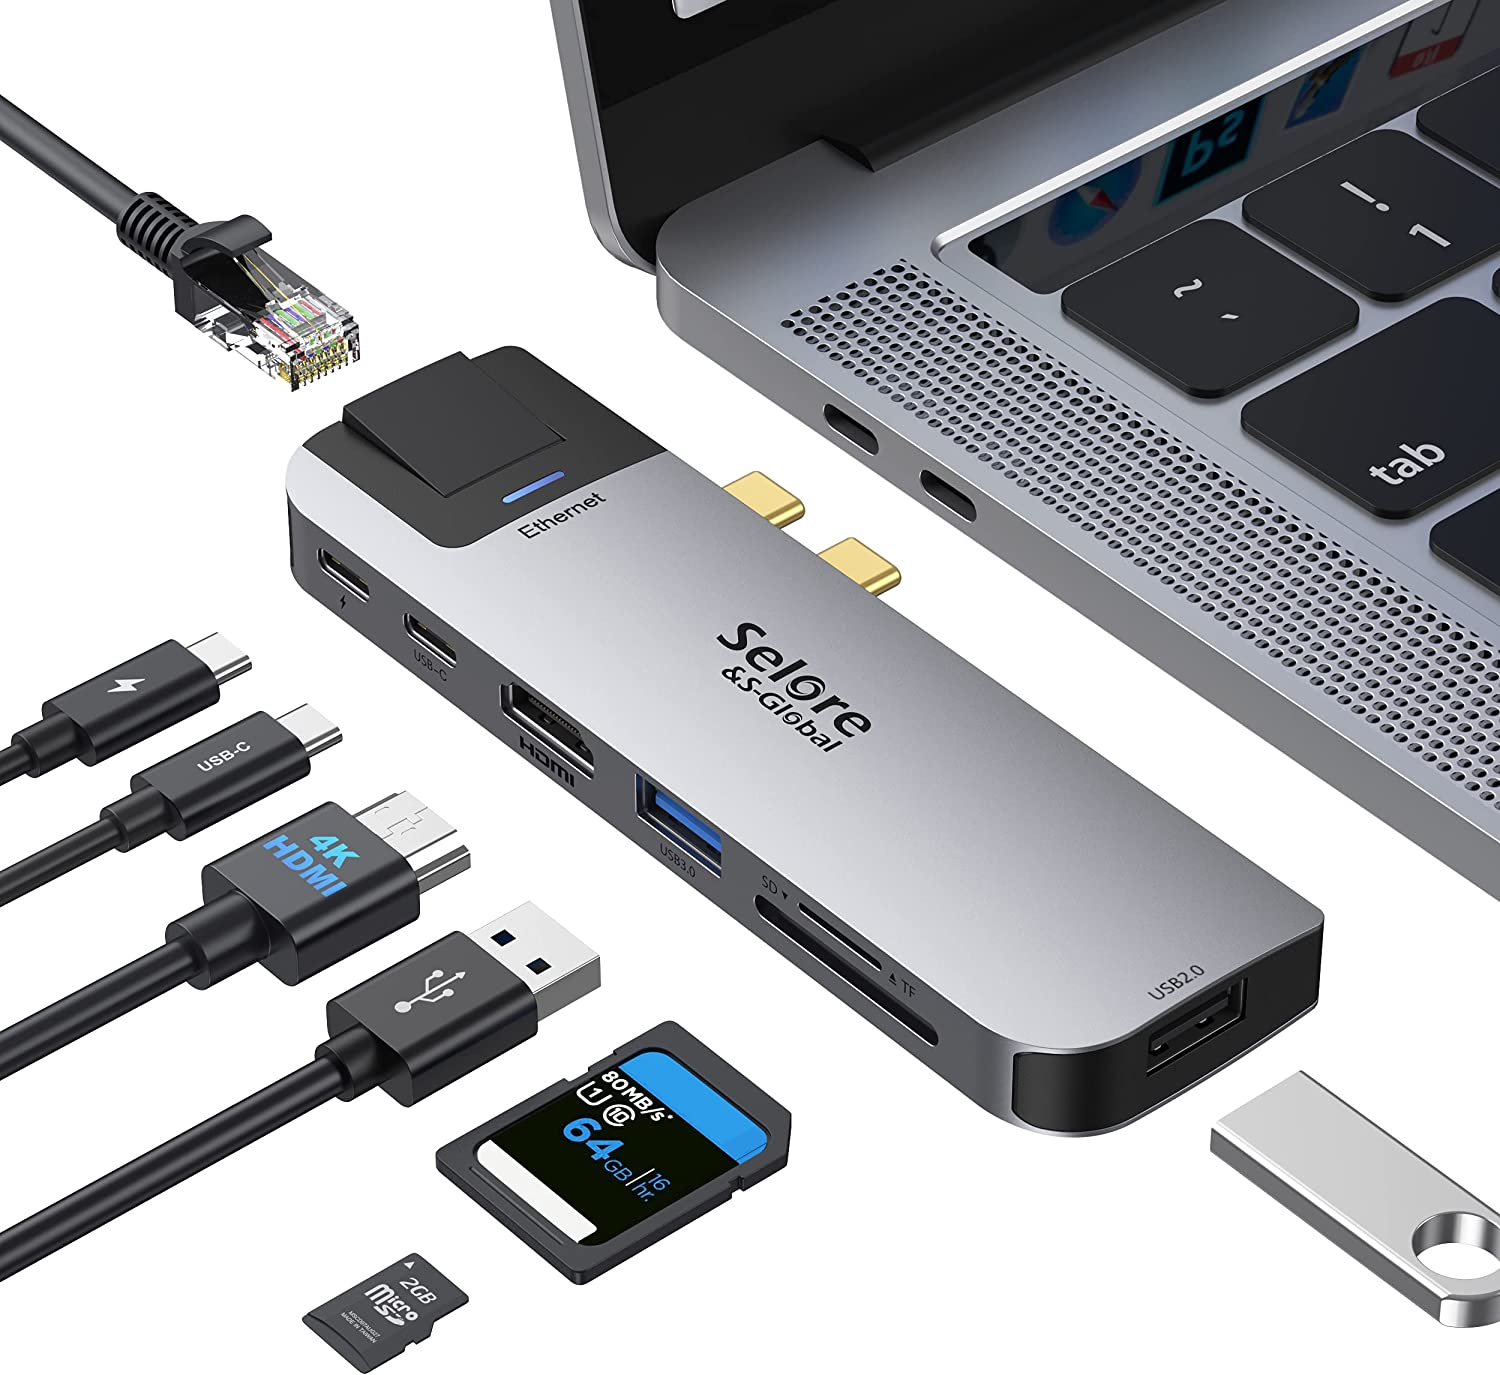 MacBook Pro USB C Adapter, USB C to HDMI Adapter for MacBook Pro/Air with 4K HDMI Port, Gigabit ethernet, 2 USB 3.0, TF/SD Card Reader, USB-C 100W PD and Thunderbolt 3 8-in-1 MacBook Docking Station